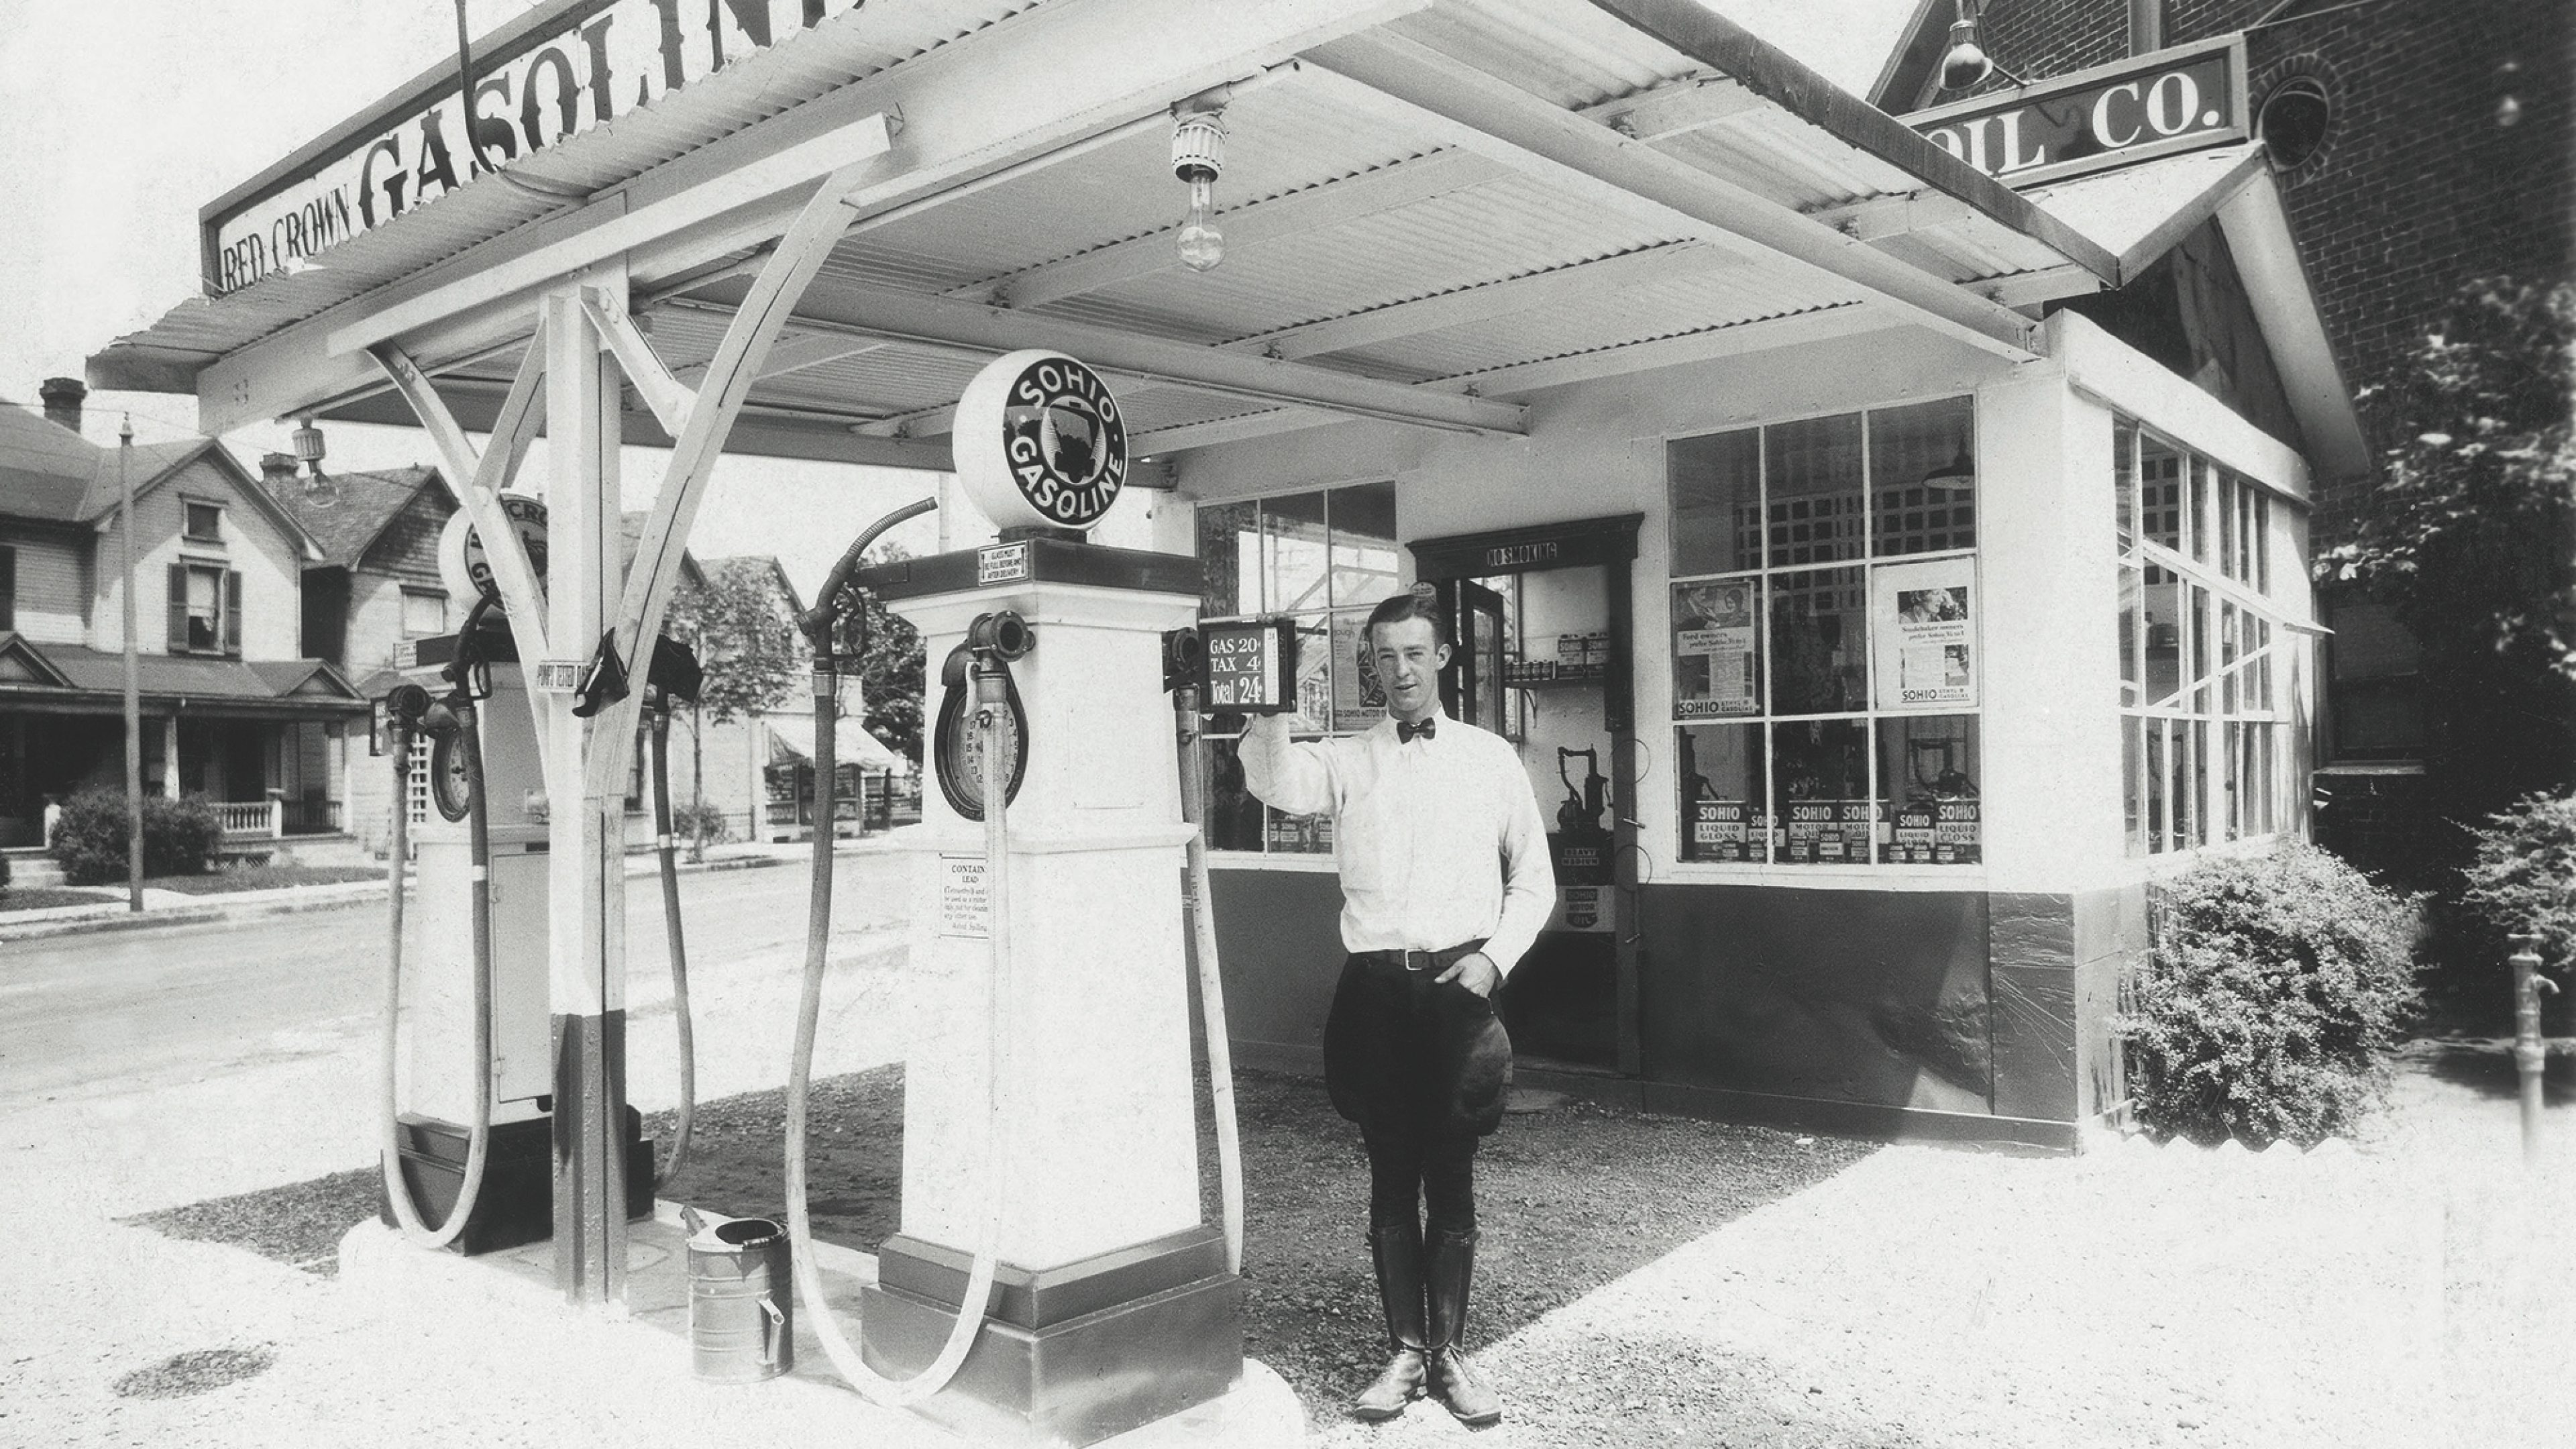 A person standing on the forecourt of an old Sohios service station.